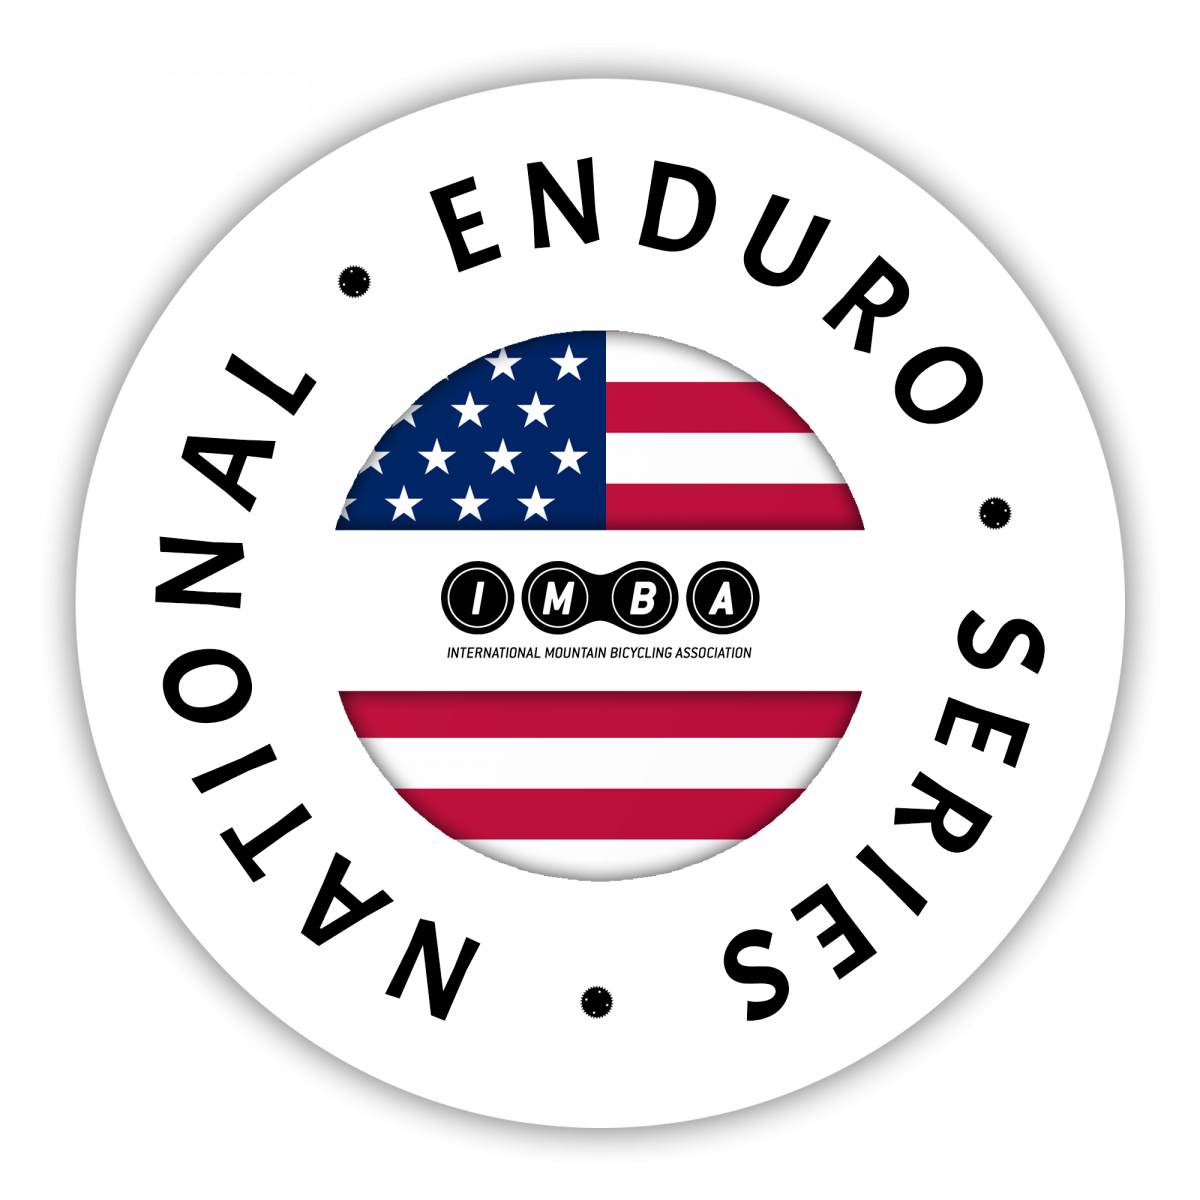 BREAKING NEWS: The CLIF Enduro East Killington by Vittoria ESC is part now the new National Enduro Series